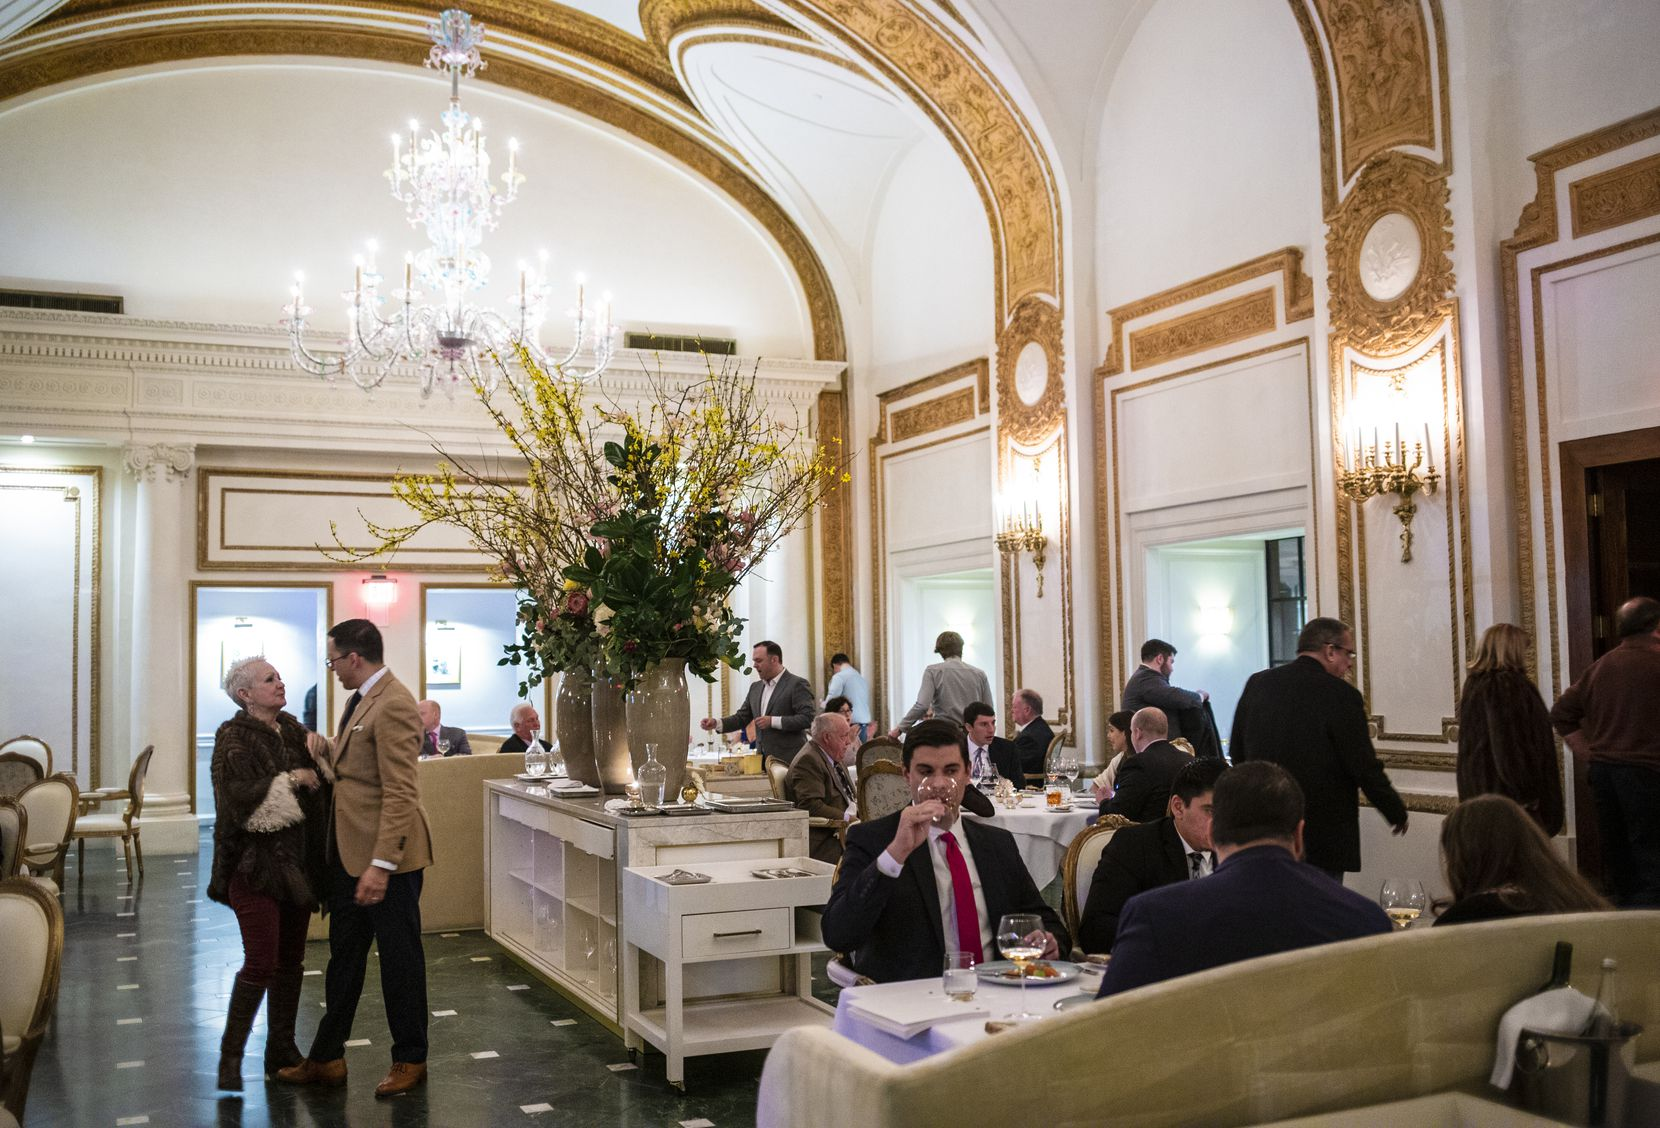 The French Room in Dallas, located in the more than 100-year-old Adolphus Hotel, is an iconic restaurant. But it has struggled to stay relevant.